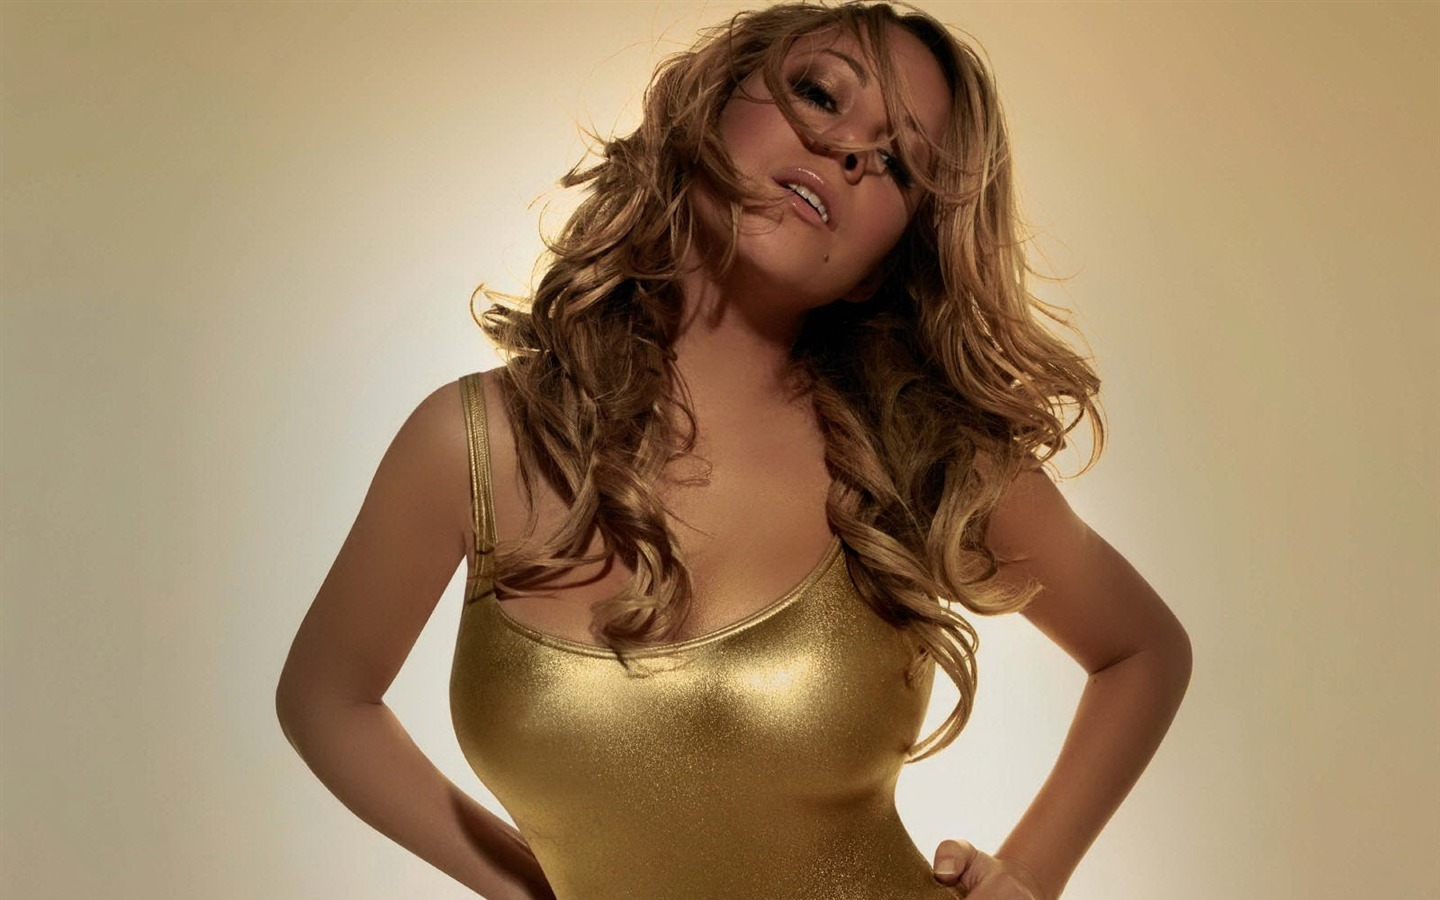 Mariah Carey #038 - 1440x900 Wallpapers Pictures Photos Images